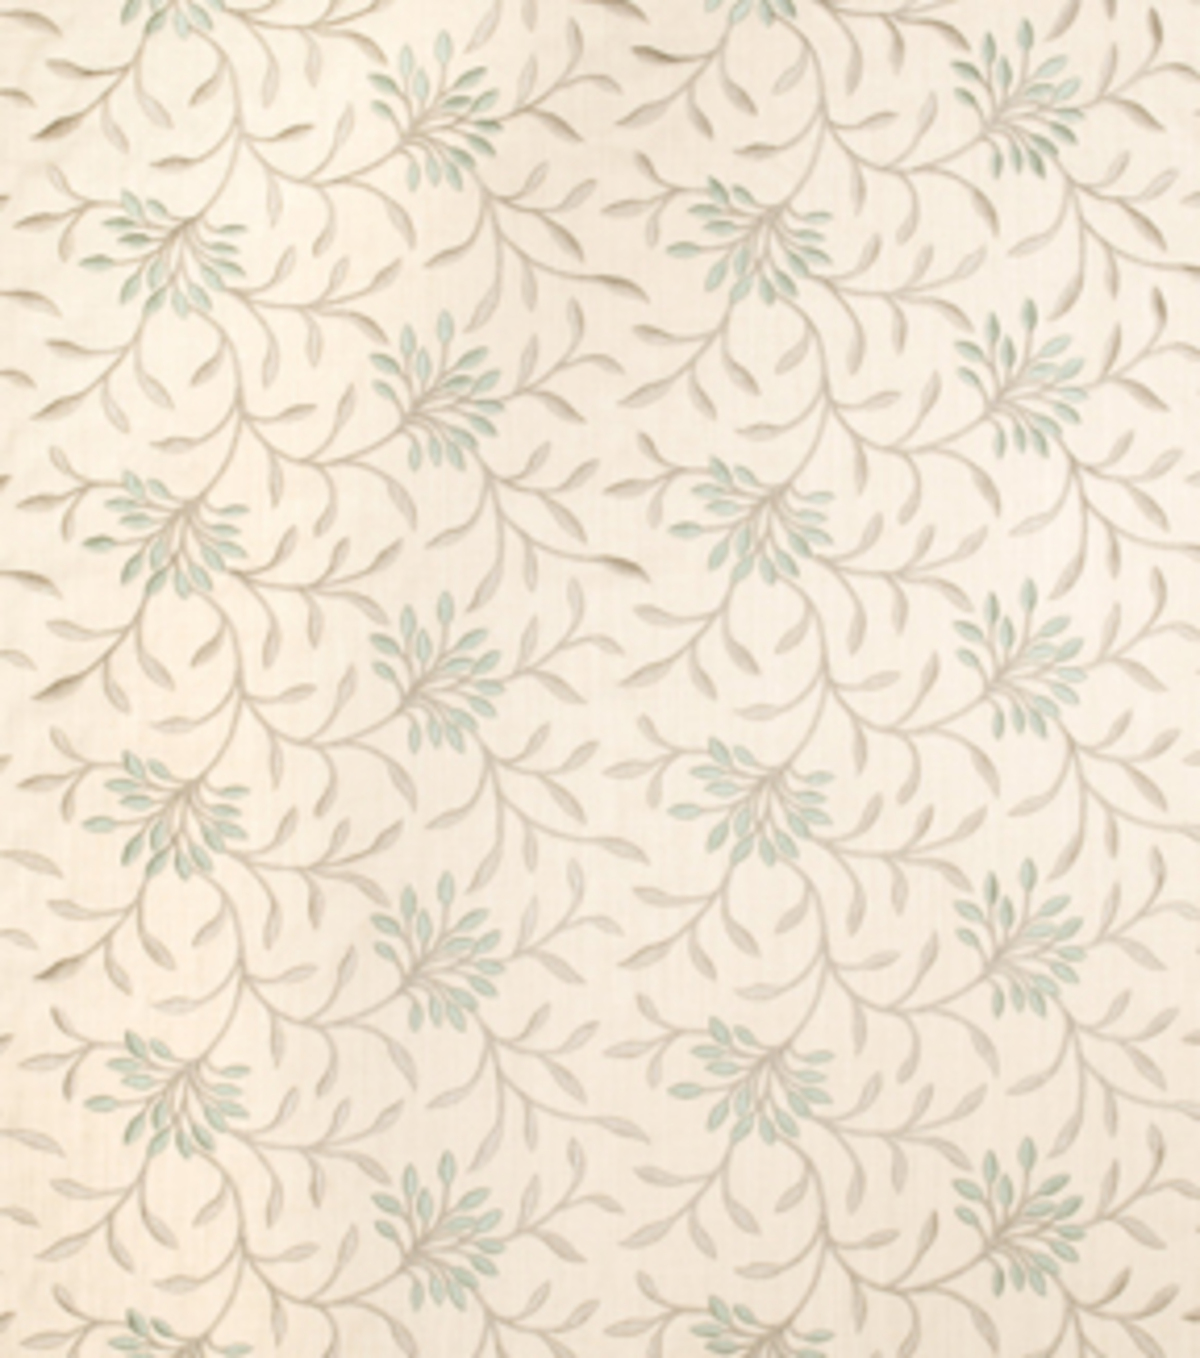 Home Decor 8\u0022x8\u0022 Fabric Swatch-Print Fabric Eaton Square Greenville Lagoon